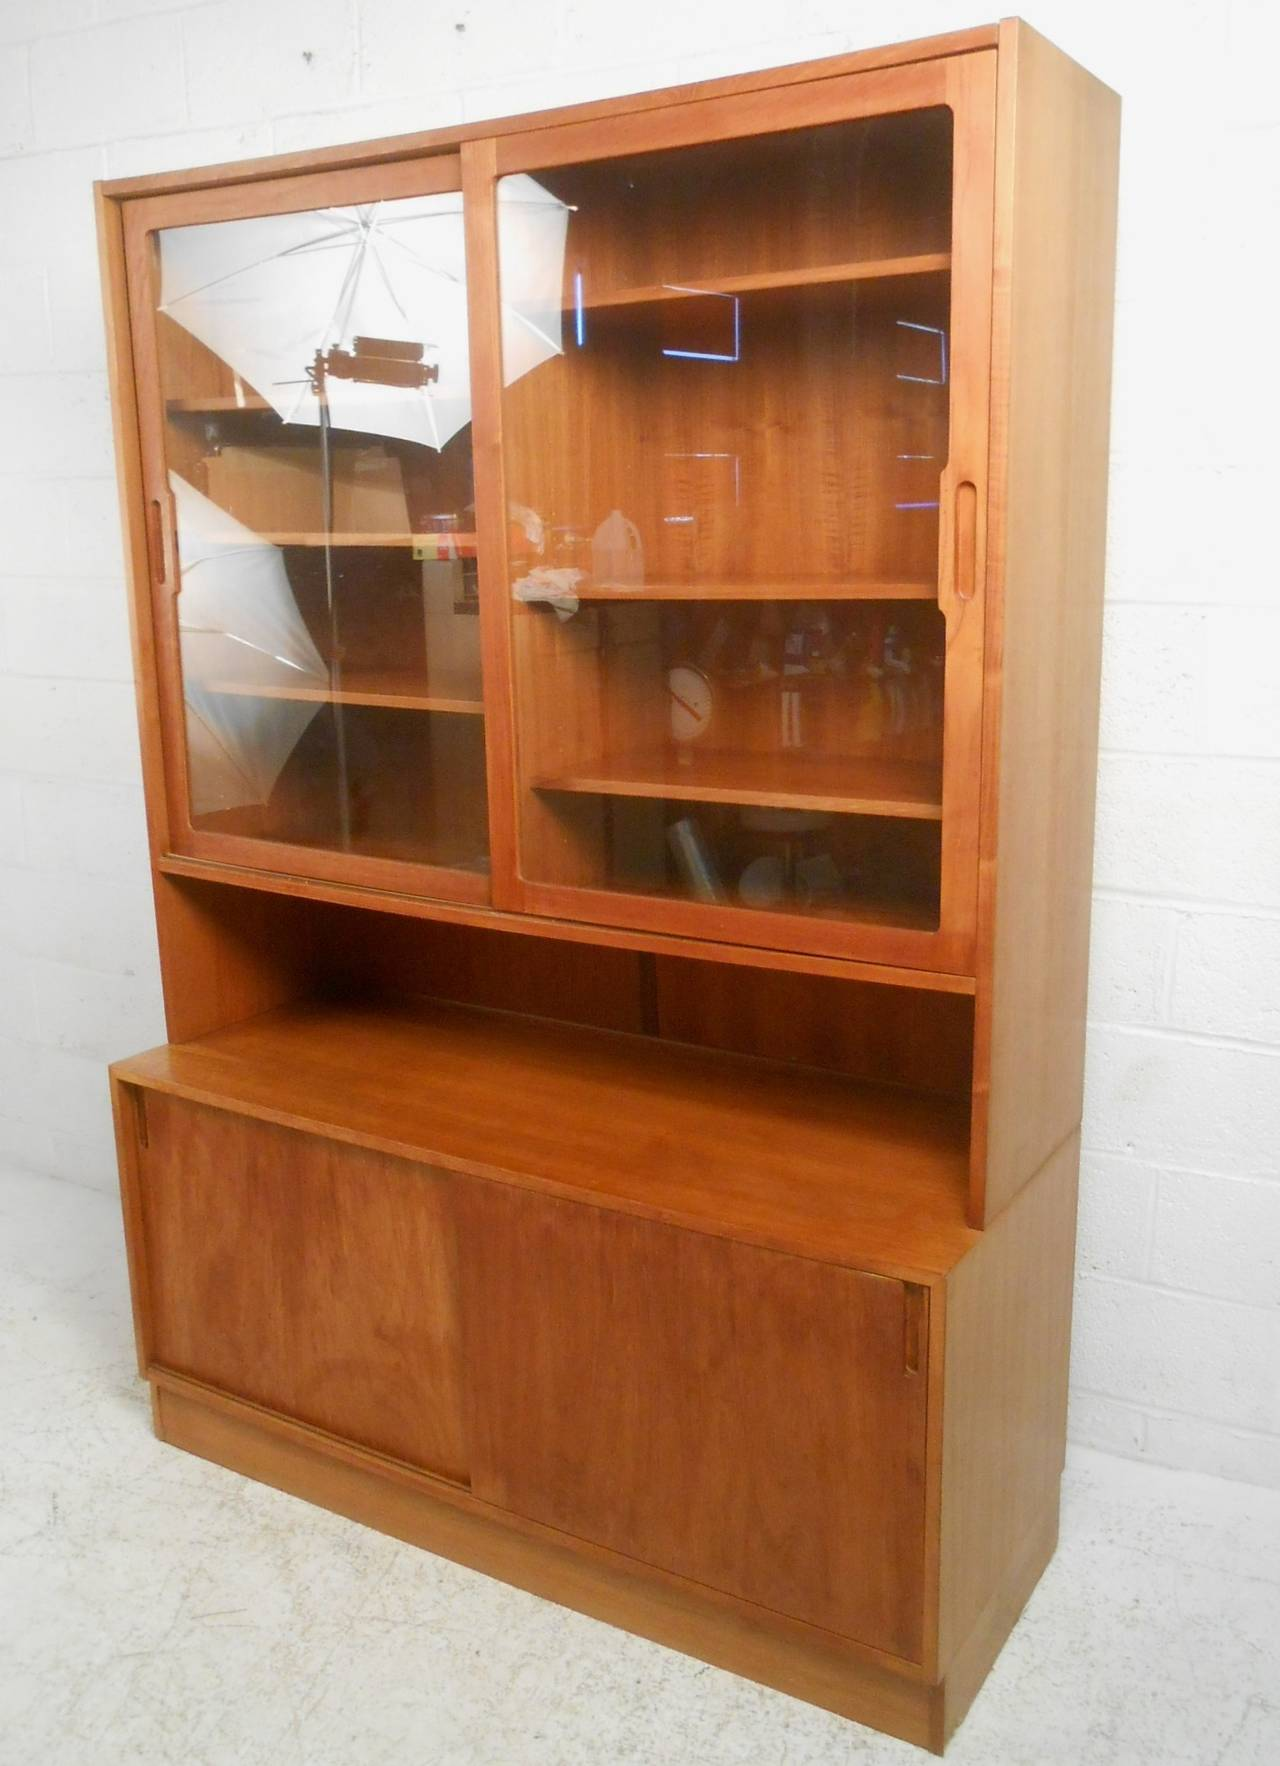 Attrayant This Beautiful Danish Teak Cabinet Makes A Stylish Storage Option For Any  Room. Spacious Glass